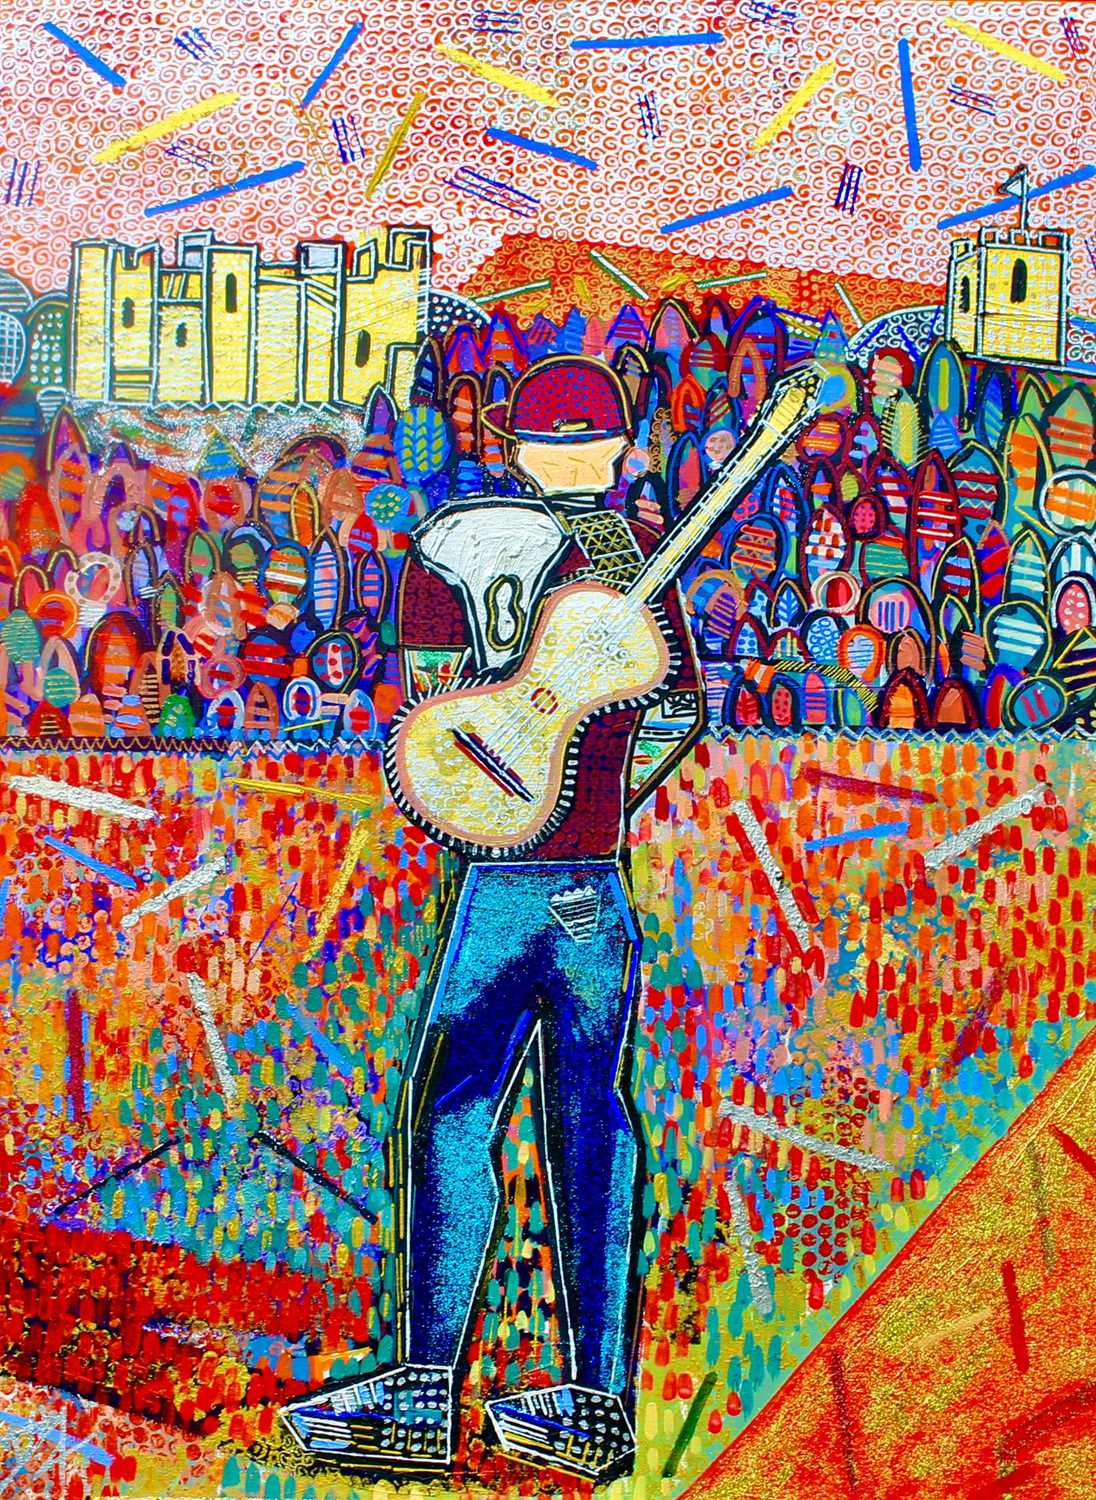 Ed & the Castle 2020 Ben Mosley Painting, Signed by Ed Sheeran Internationally acclaimed Official